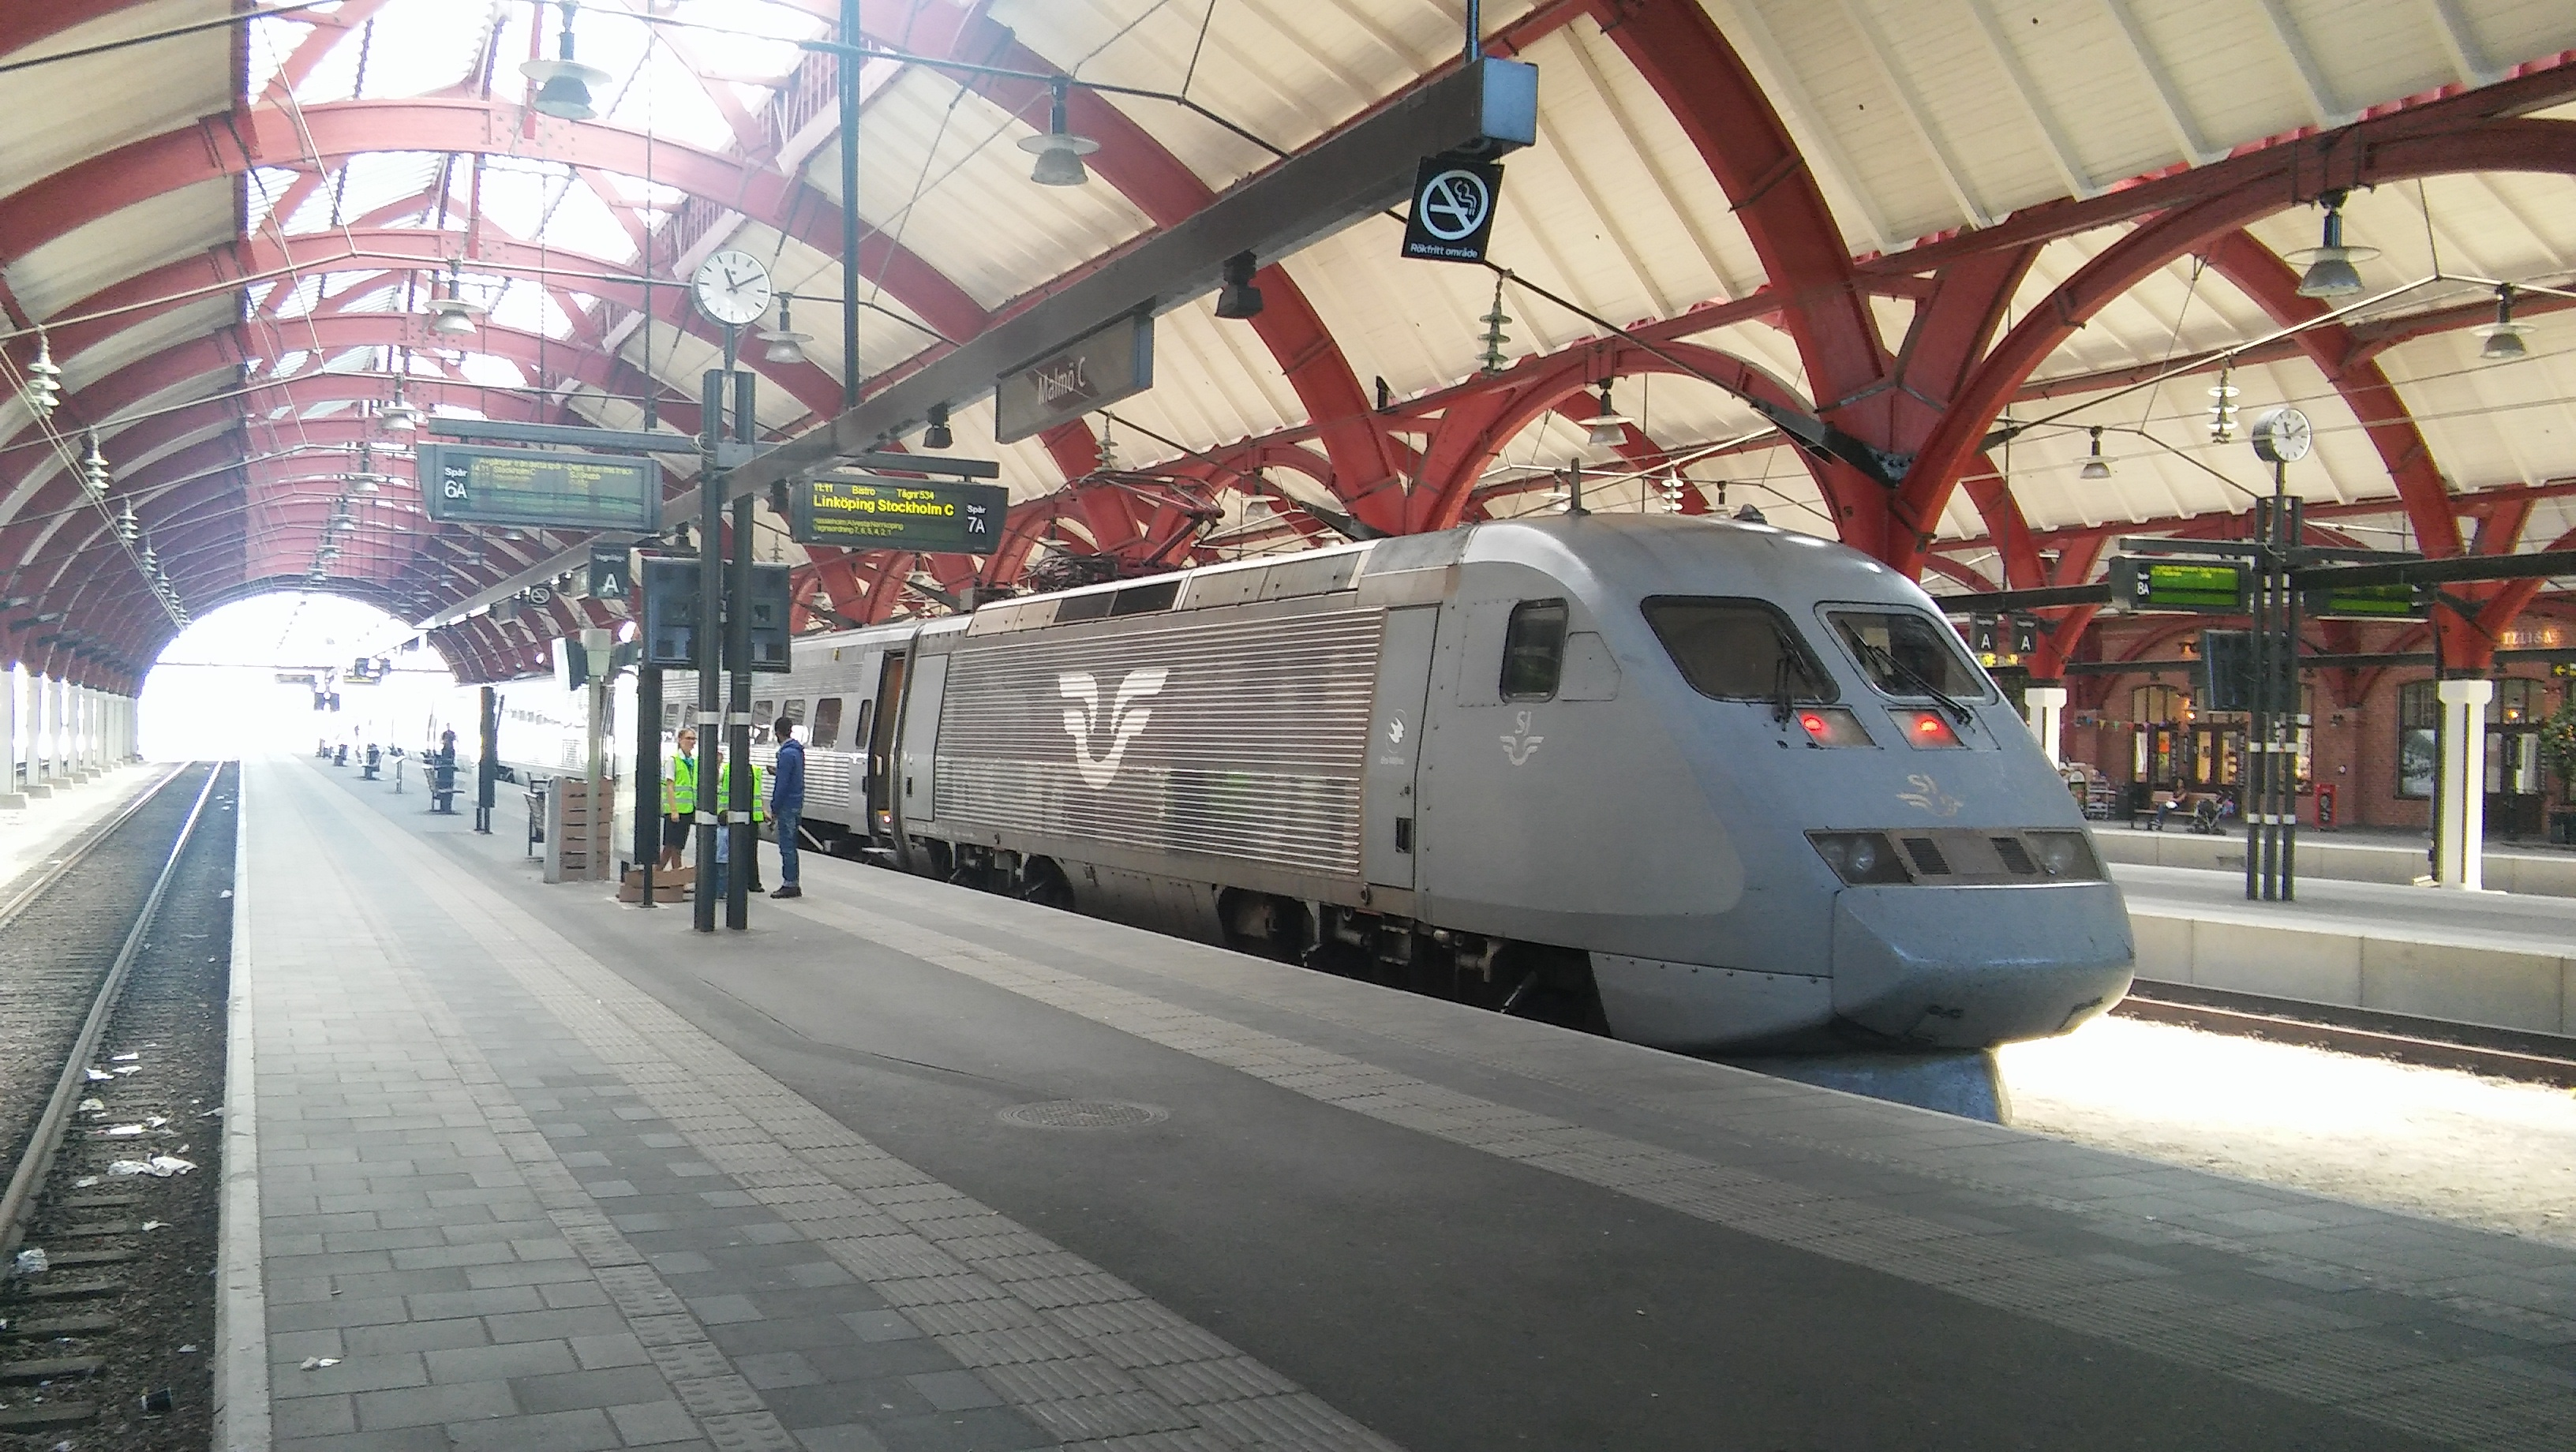 File:ASEA X2 at Malmö centralstation in 2016 jpg - Wikimedia